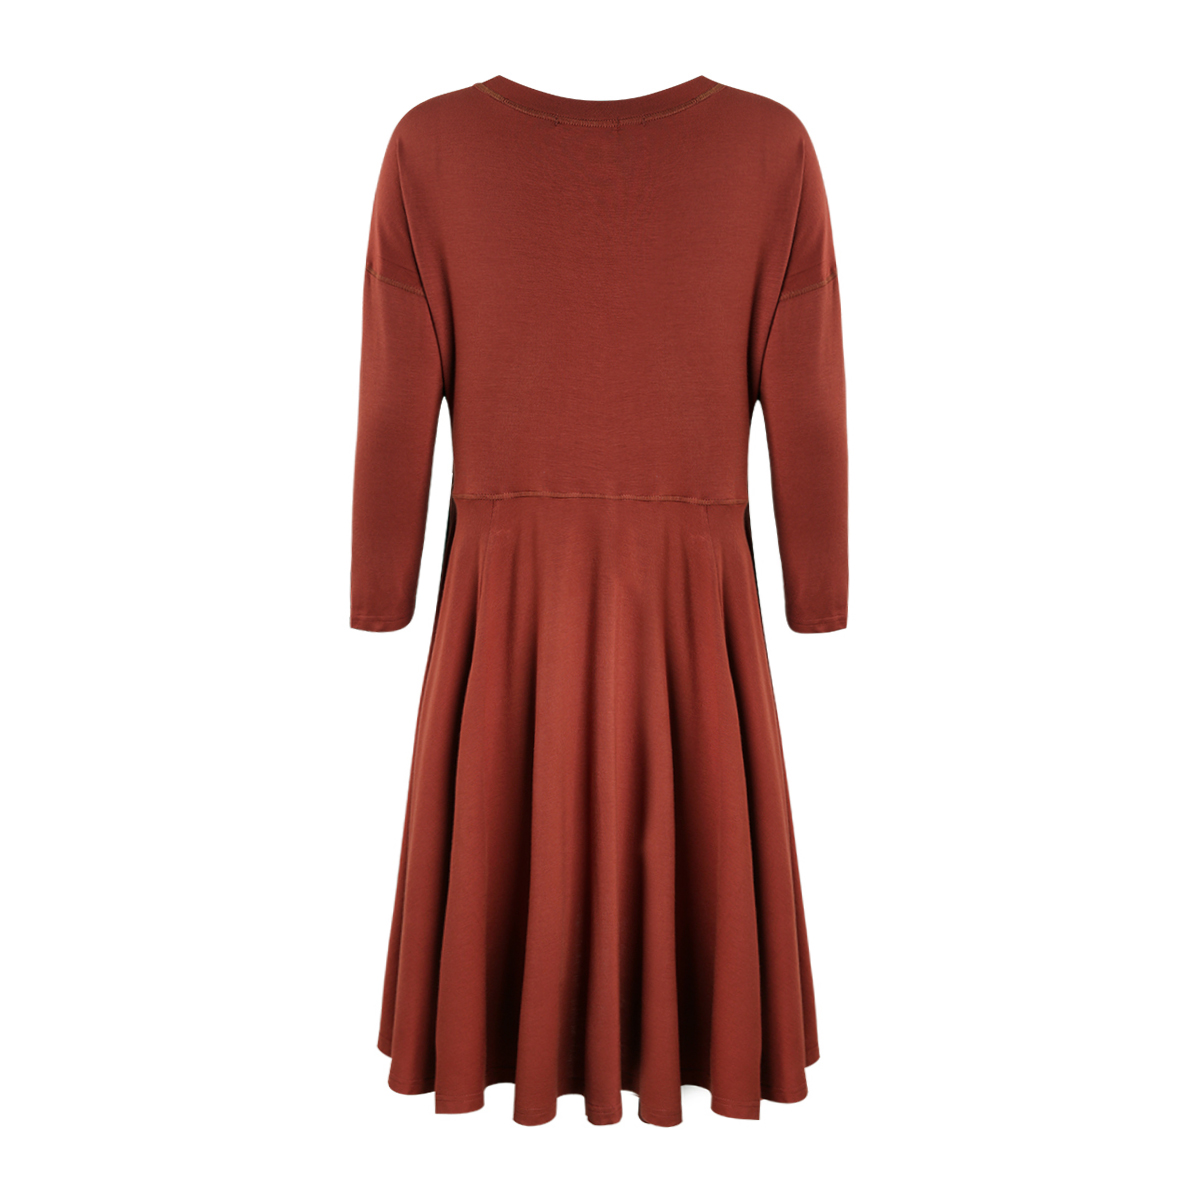 HYH HAOYIHUI Two Sided Sexy Split Bottom Dress Long Sleeve Red Solid Draped Dresses O Neck New Arrival Spring Prairie Chic in Dresses from Women 39 s Clothing